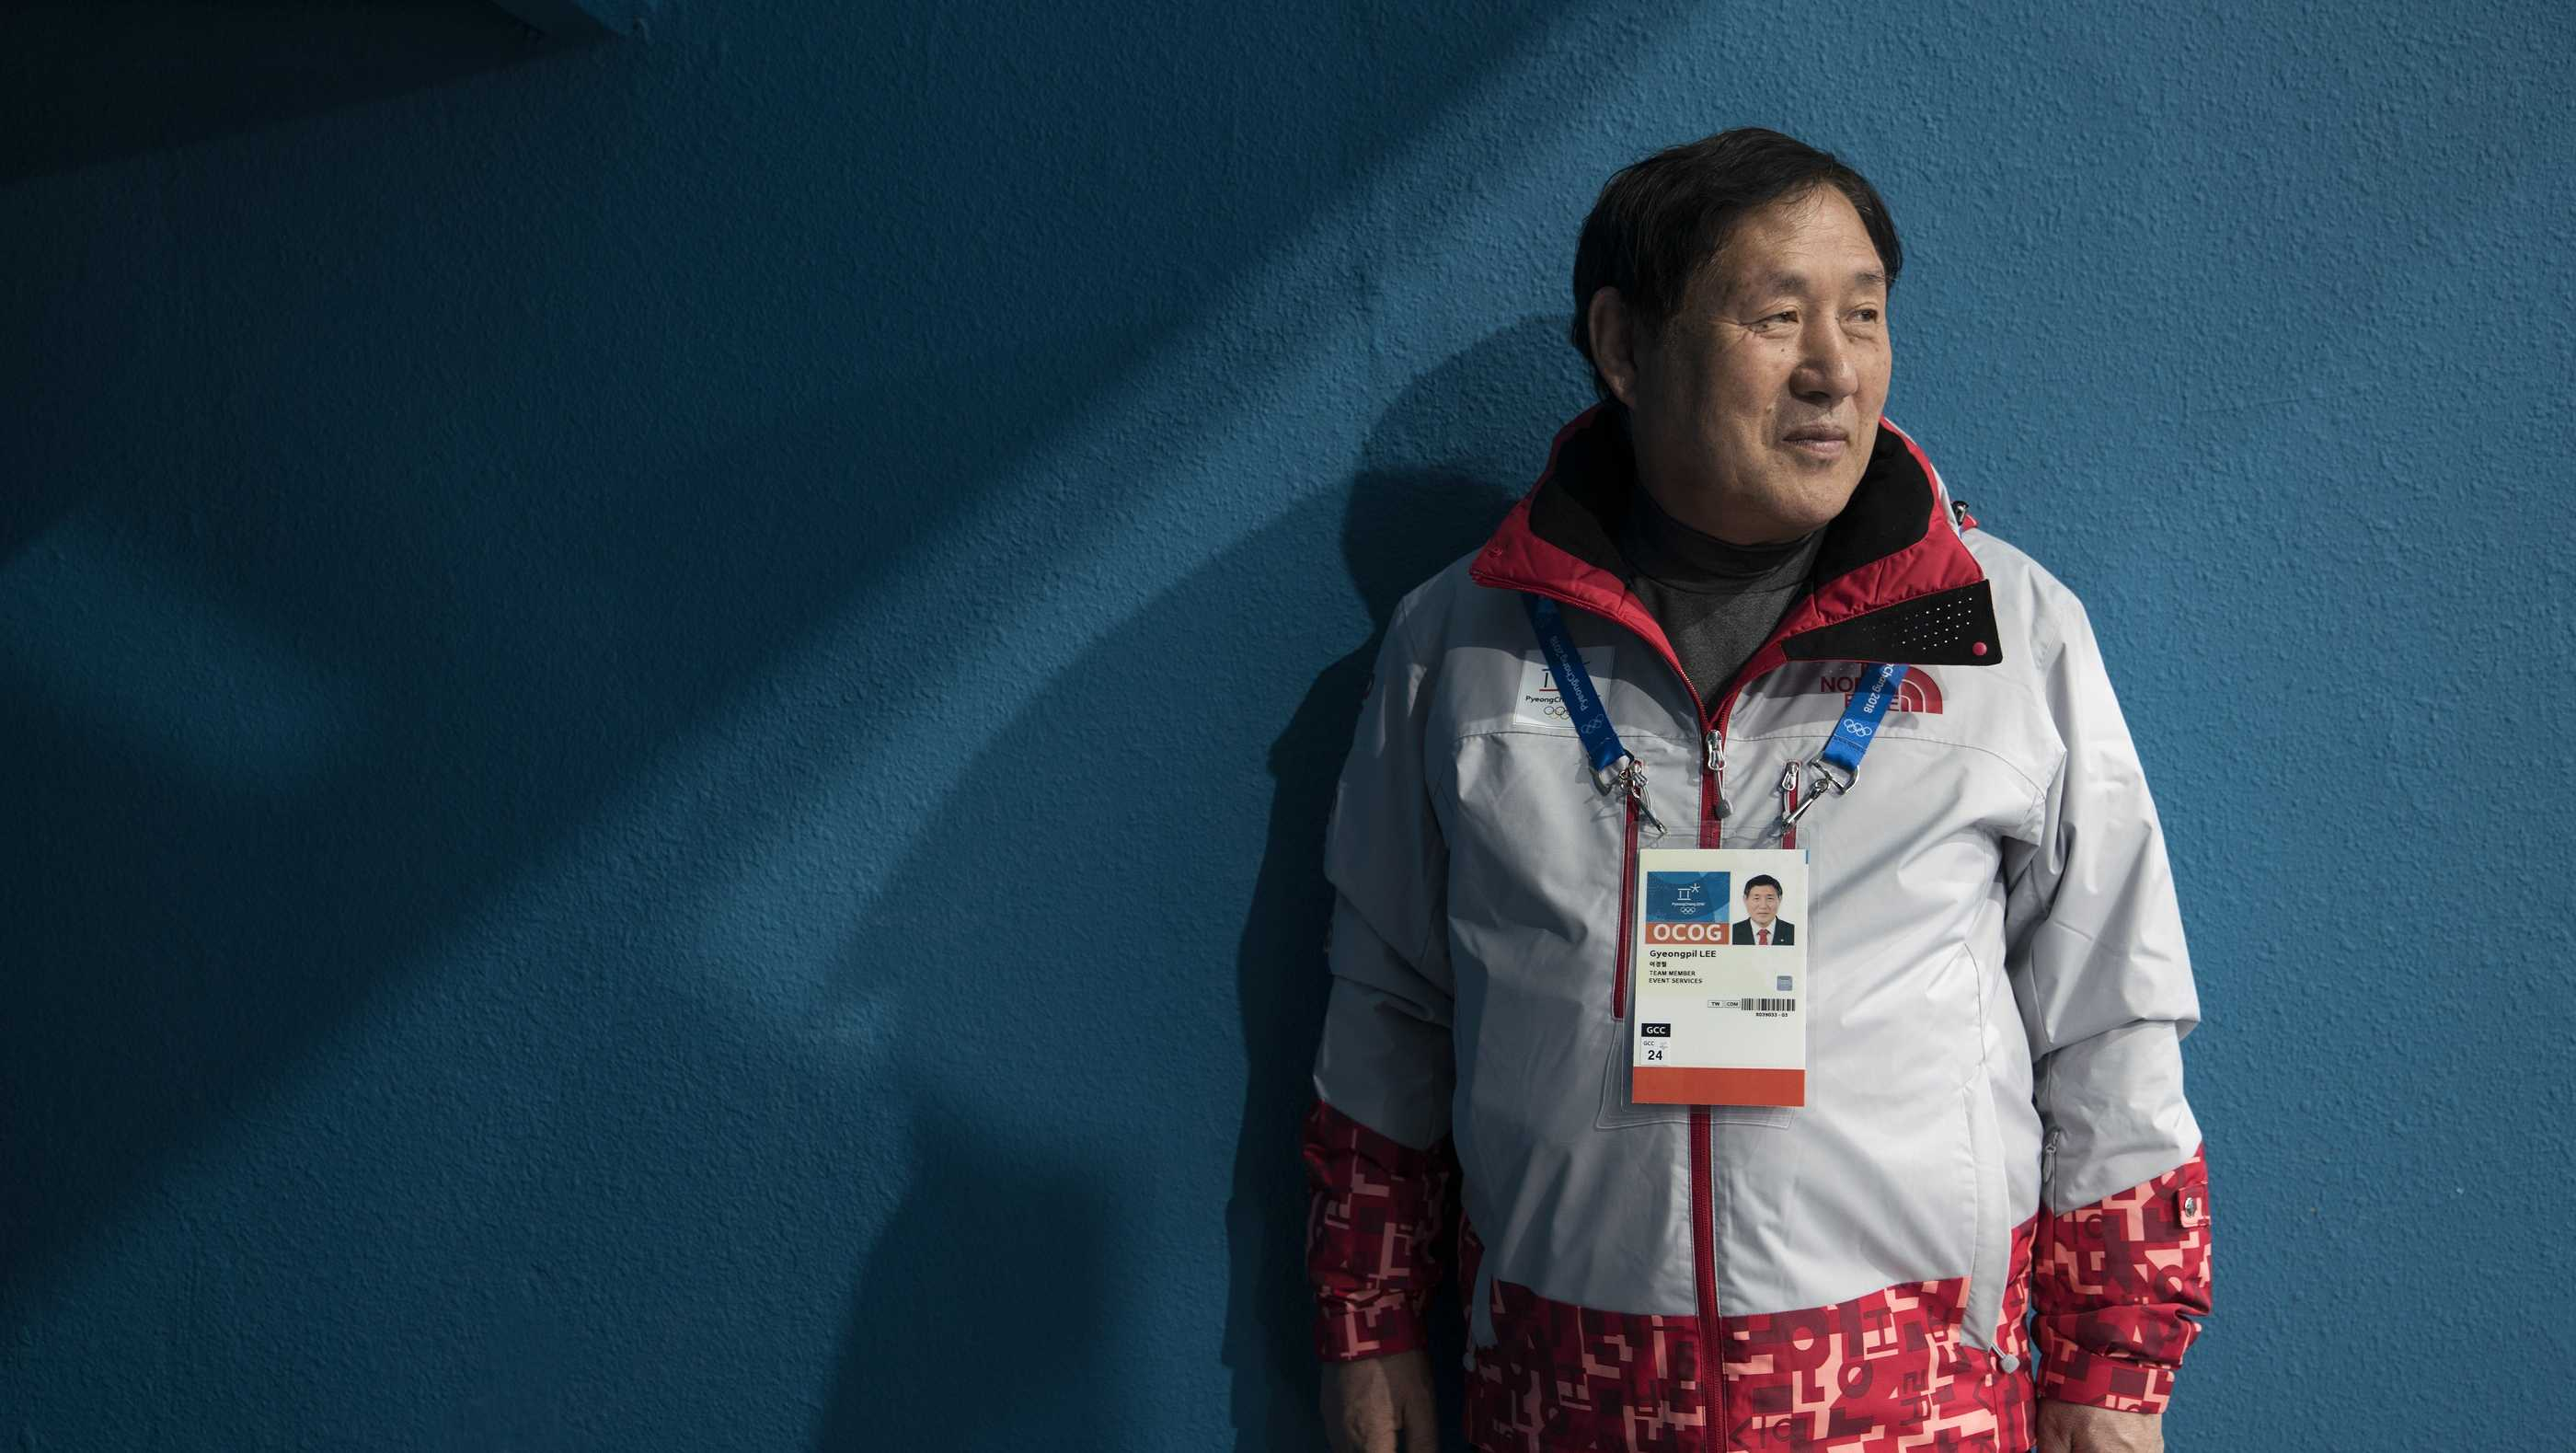 Lee Gyeong Pil waits for spectators to arrive at one the entrances of the Gangneung Curling center at the 2018 Winter Olympics in Gangneung, South Korea, Saturday, Feb. 24, 2018. Lee was among five babies born on an American ship that ferried thousands of Korean refugees from North Korea during the Korean War. Nicknamed by U.S. crew as Kimchi 1 through Kimchi 5, they've become a symbol of the South Korea-U.S. military alliance. Lee and Sohn Yang Young were in Gangneung to volunteer for the Olympics as part of their efforts to promote peace and remind younger generations of the lessons they've learned.